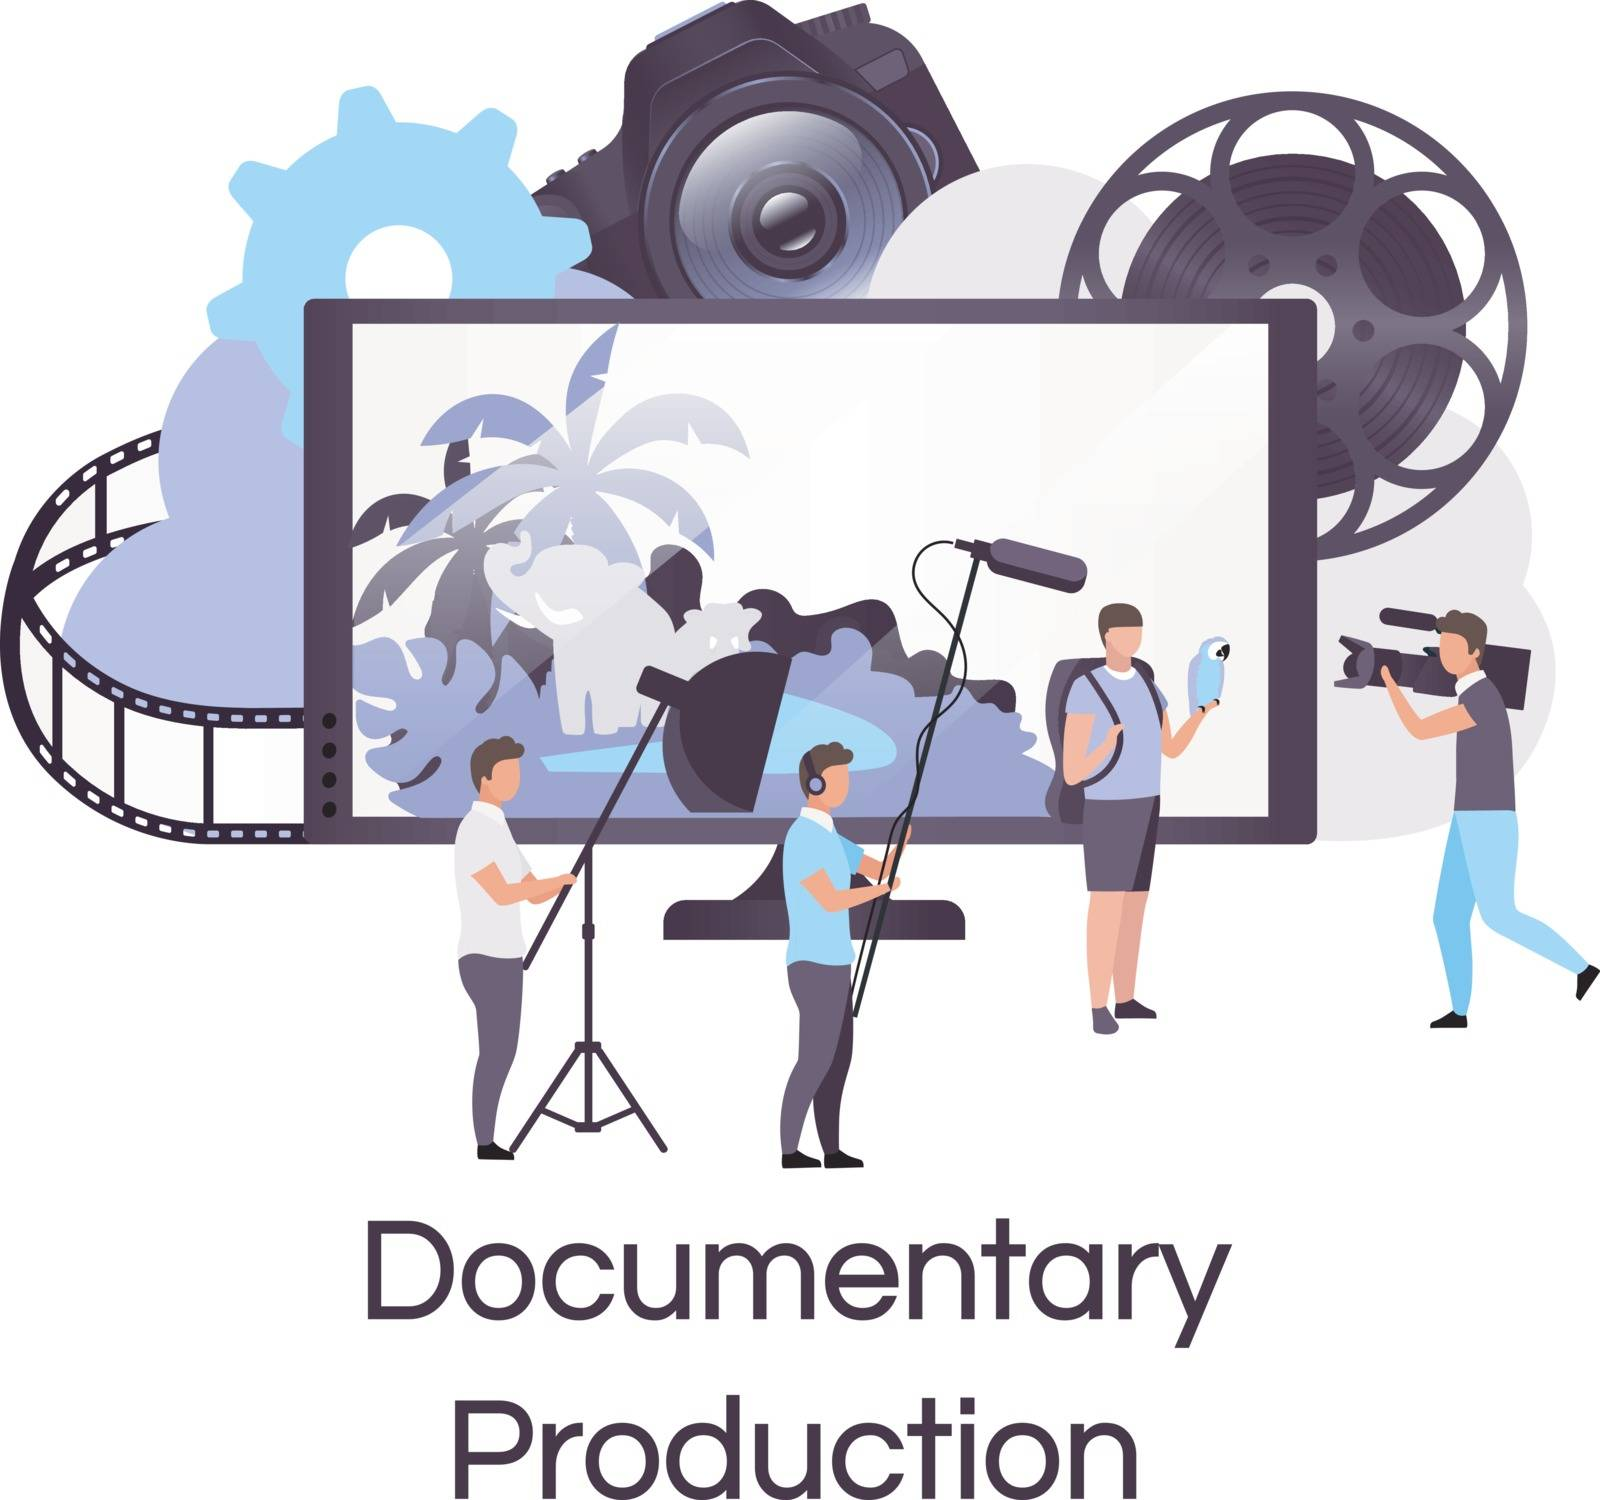 Documentary production flat concept icon. Filmmaking, broadcasting and cinematography sticker, clipart. Director, actor and cameraman crew. Isolated cartoon illustration on white background